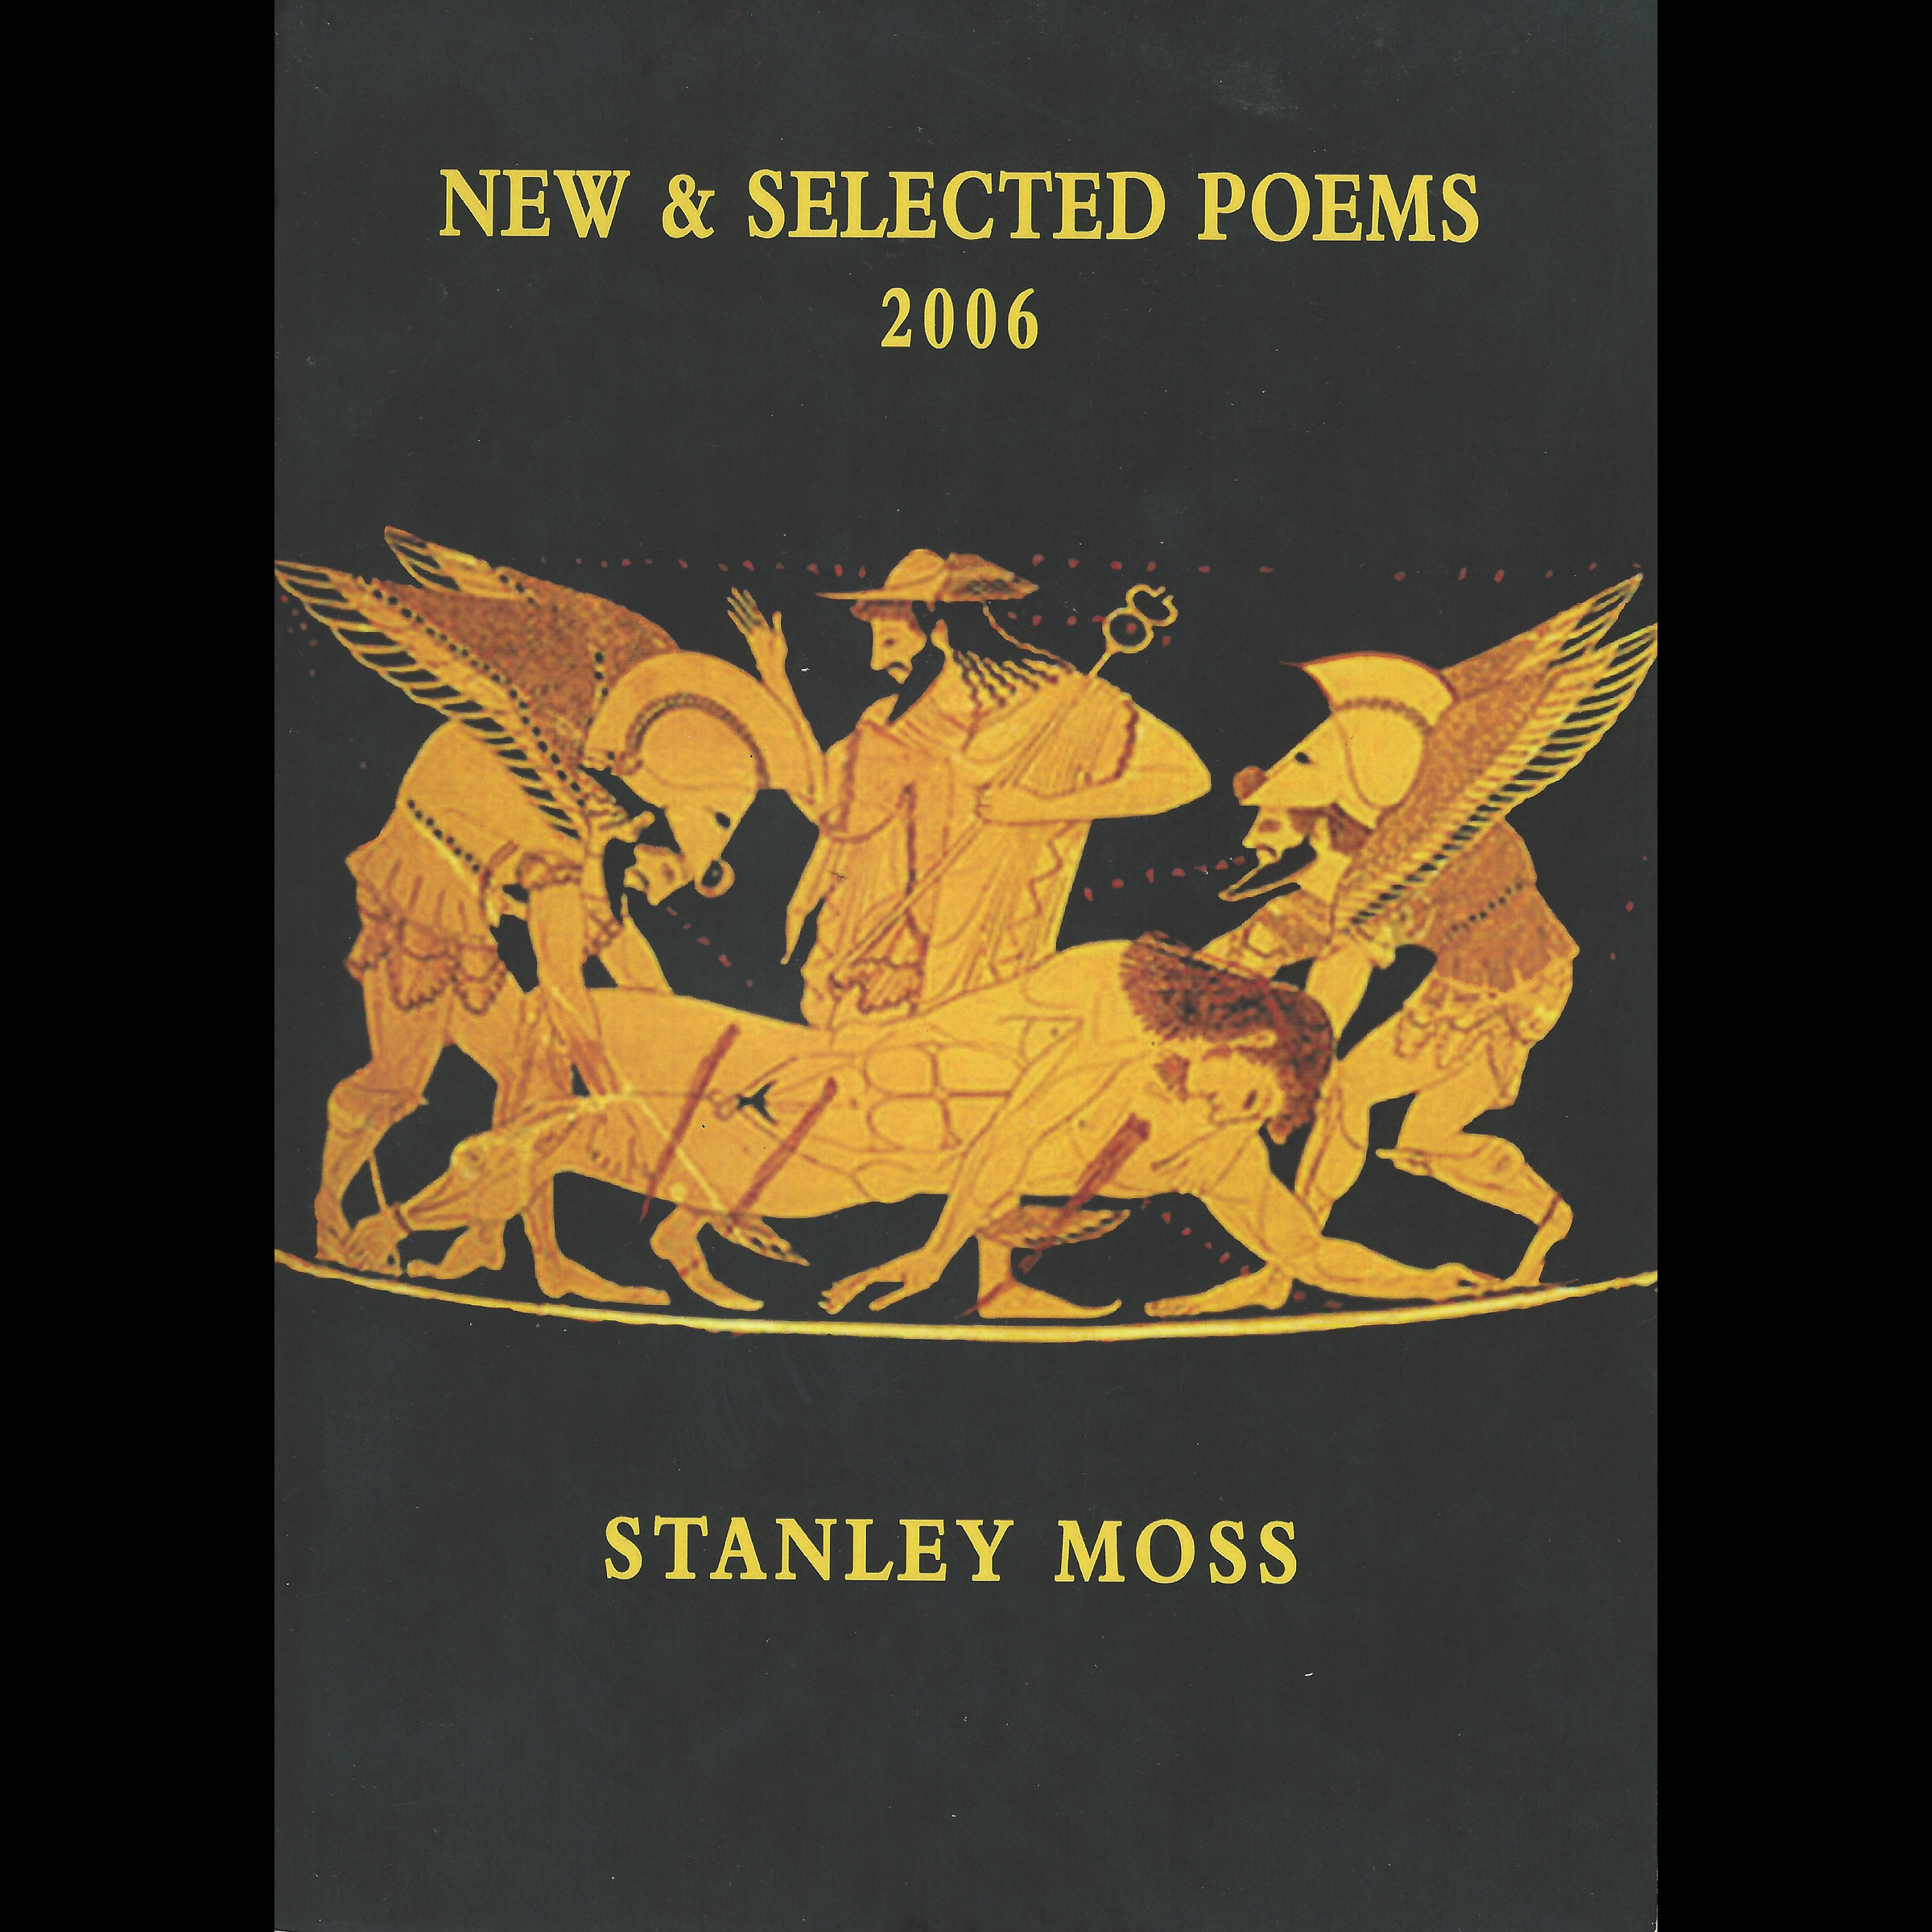 New and Selected Poems (Seven Stories, 2006)